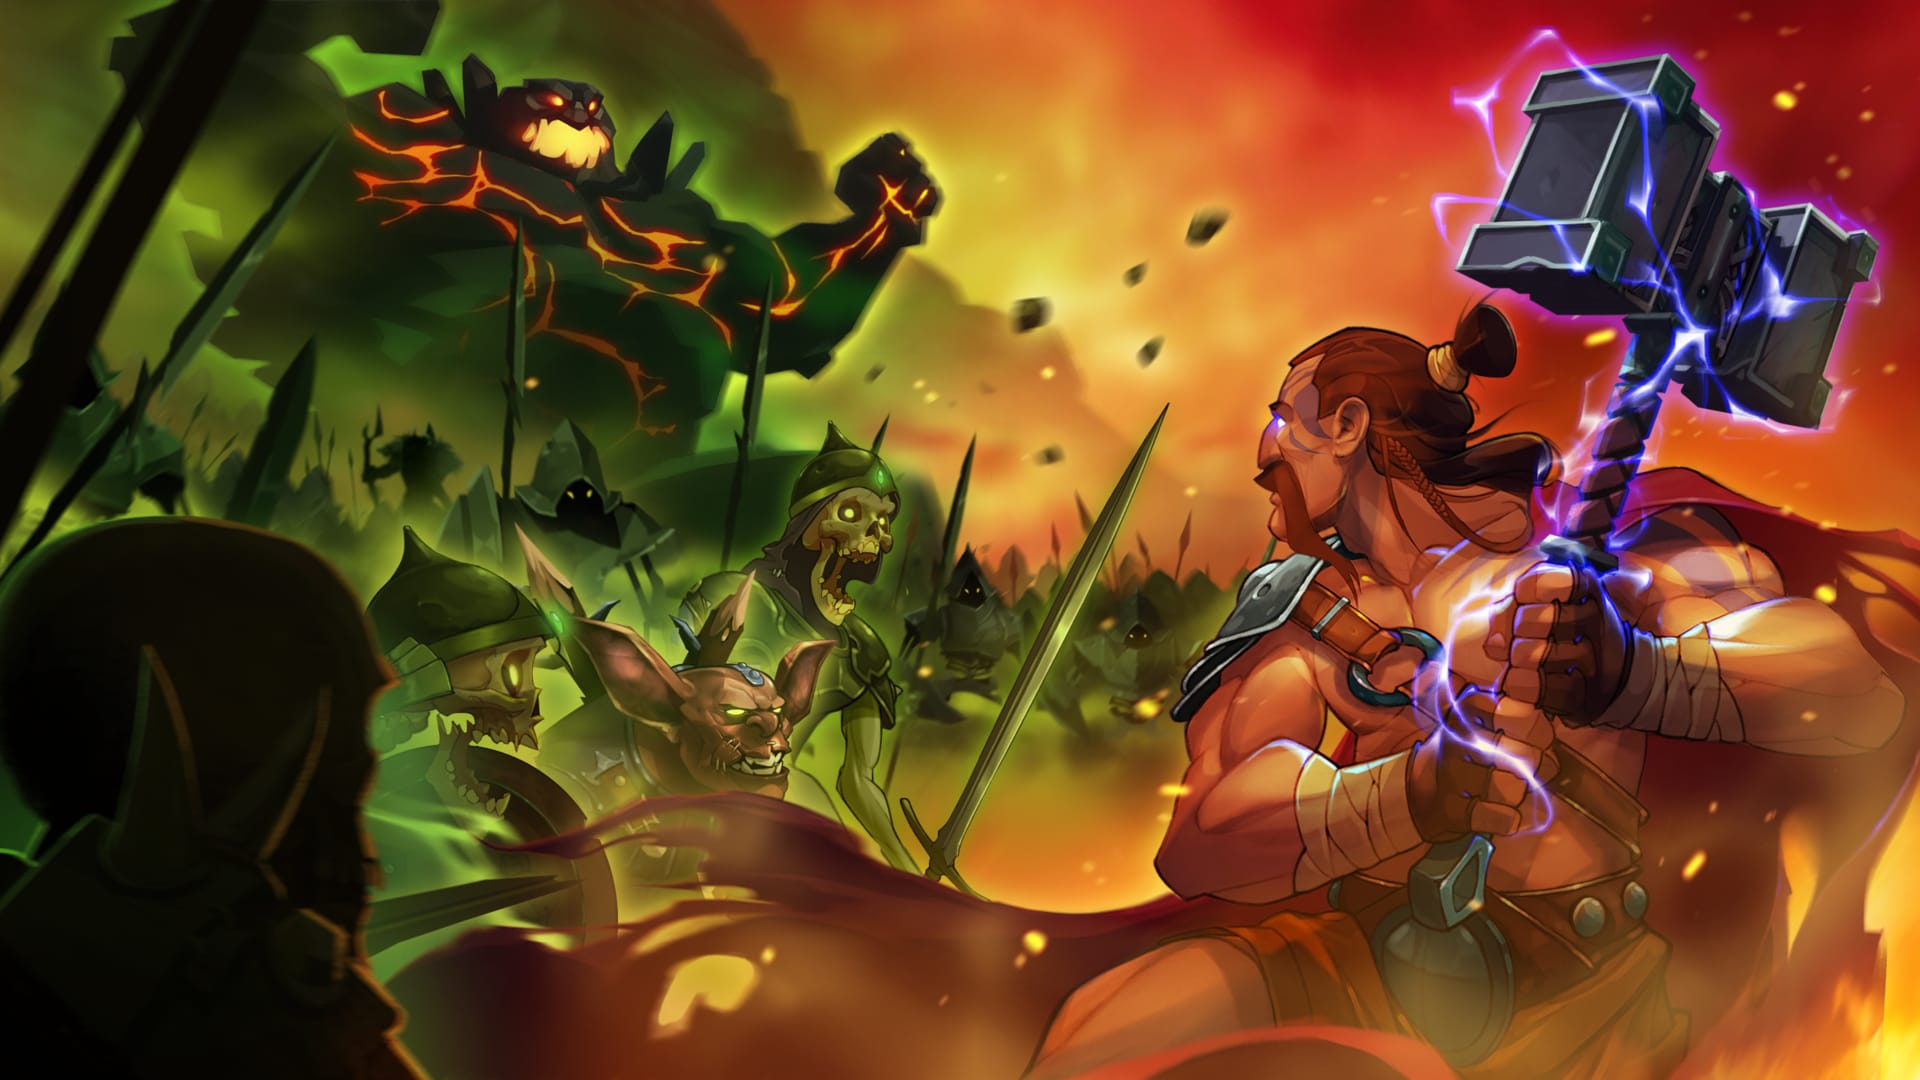 Pagan Online Is The New Action RPG From World Of Tanks